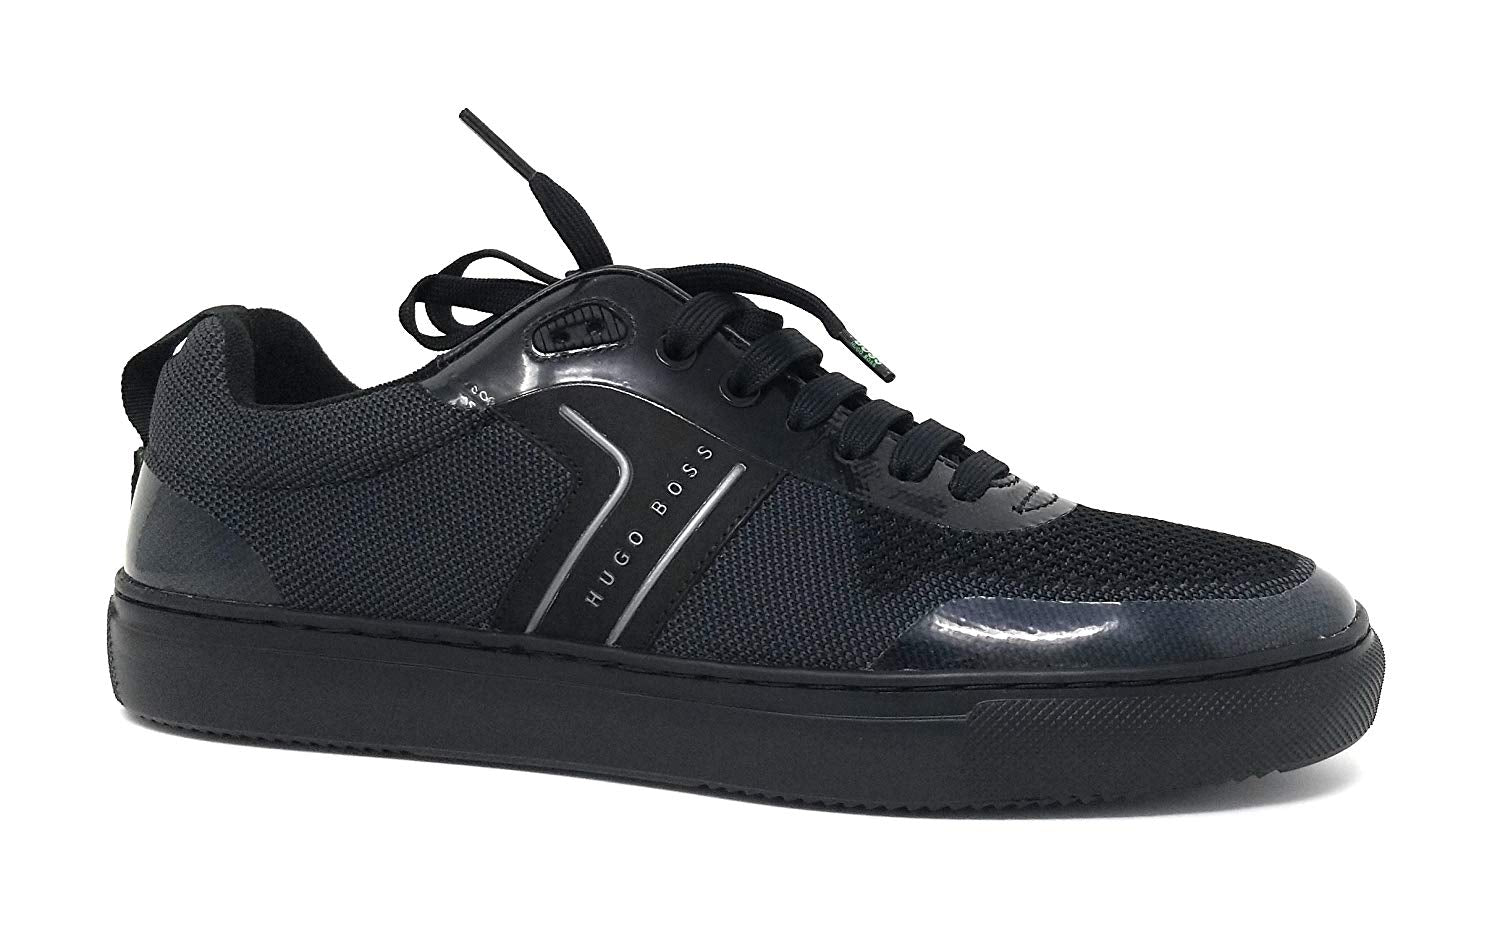 Hugo Boss Enlight Tenn knit Mens Sneakers 50379296-001